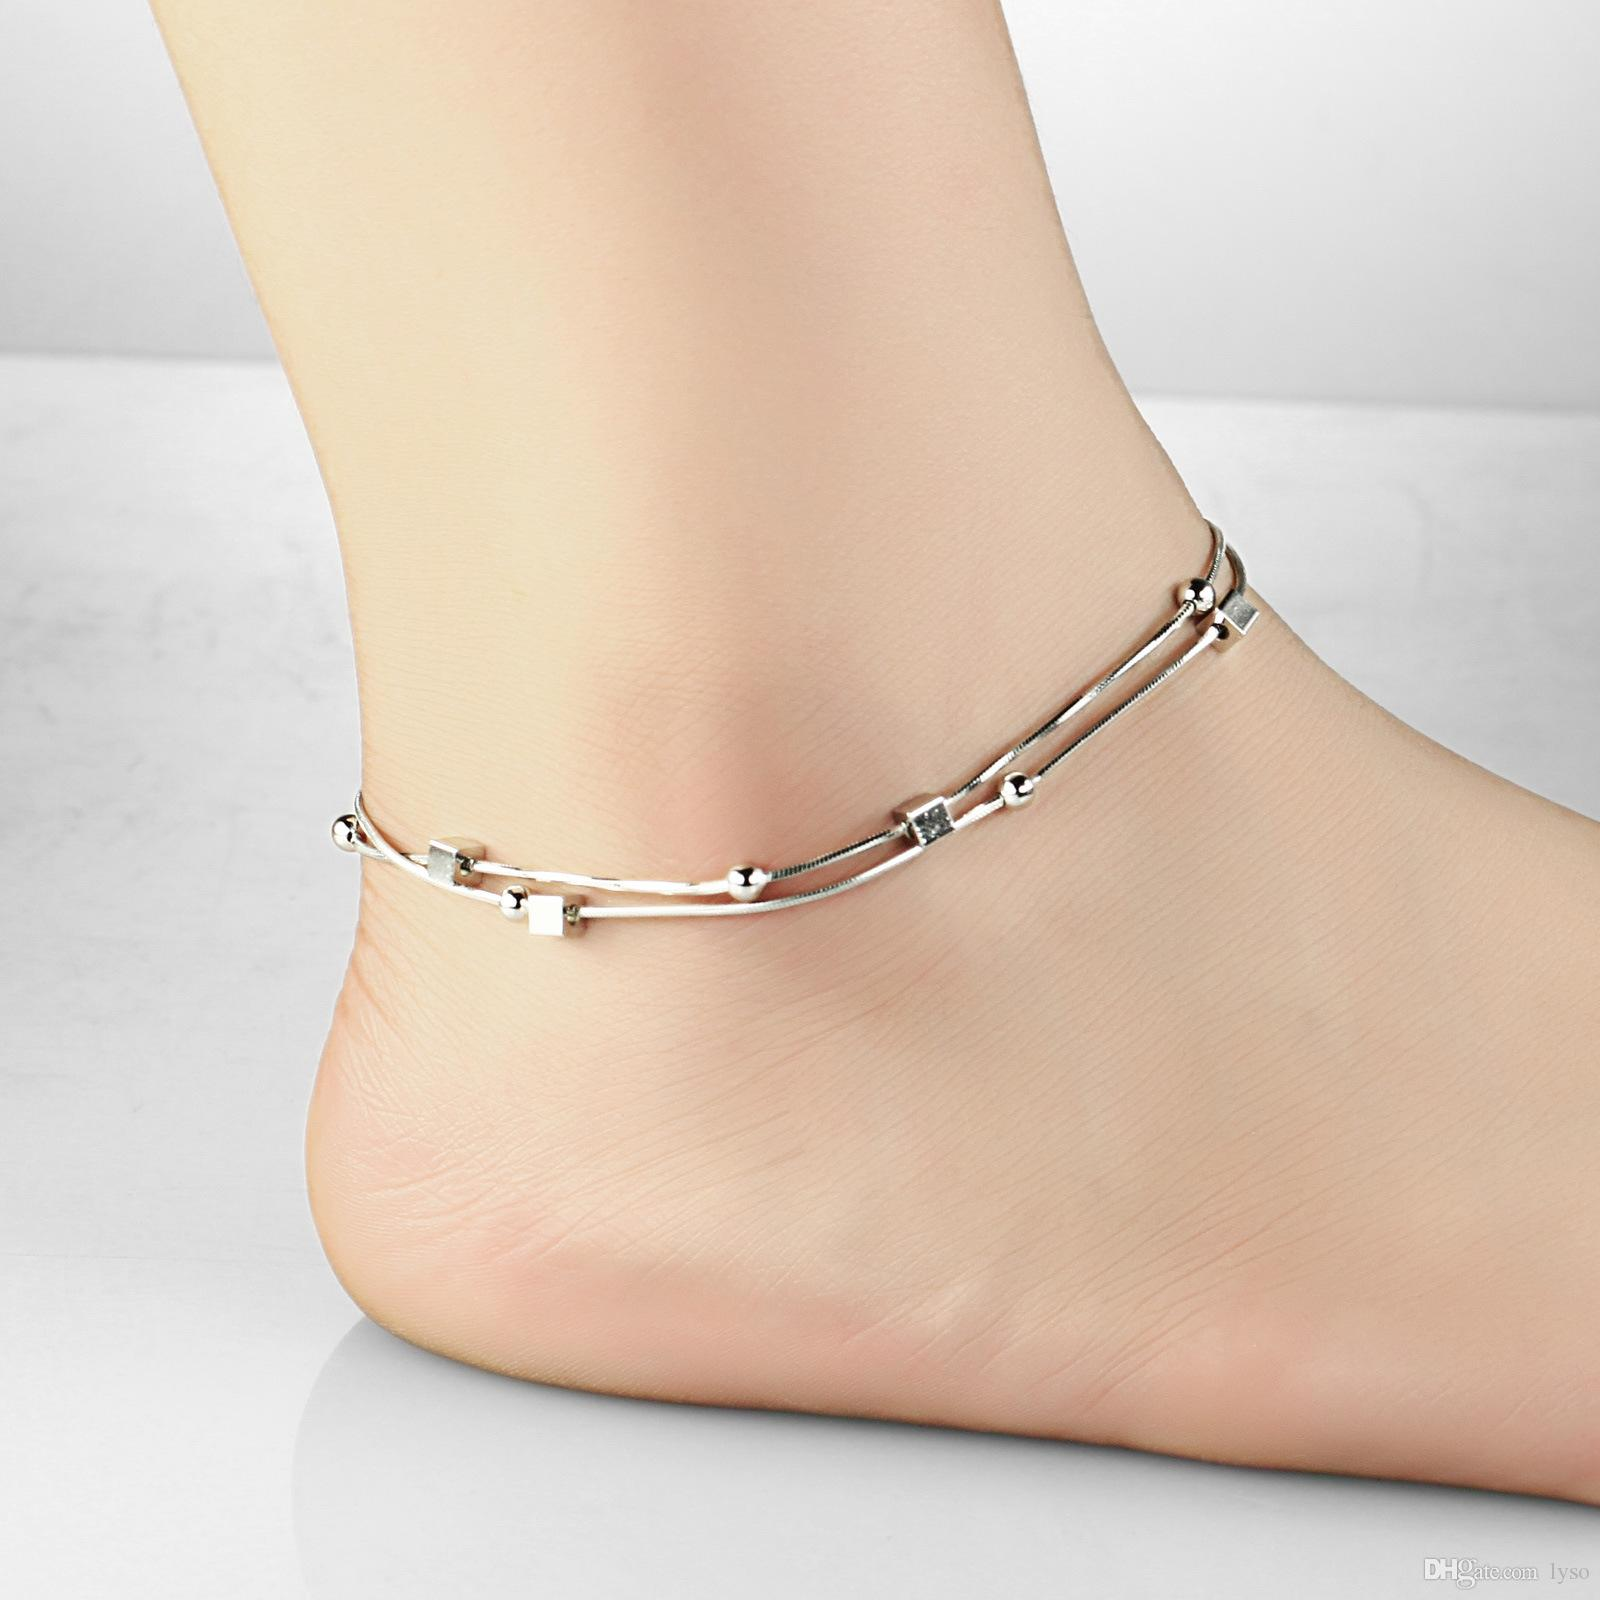 jewellery india sleek sterling online rxwl single in piece at dp amazon store buy anklet prices eloish design low silver adjustable plain anklets